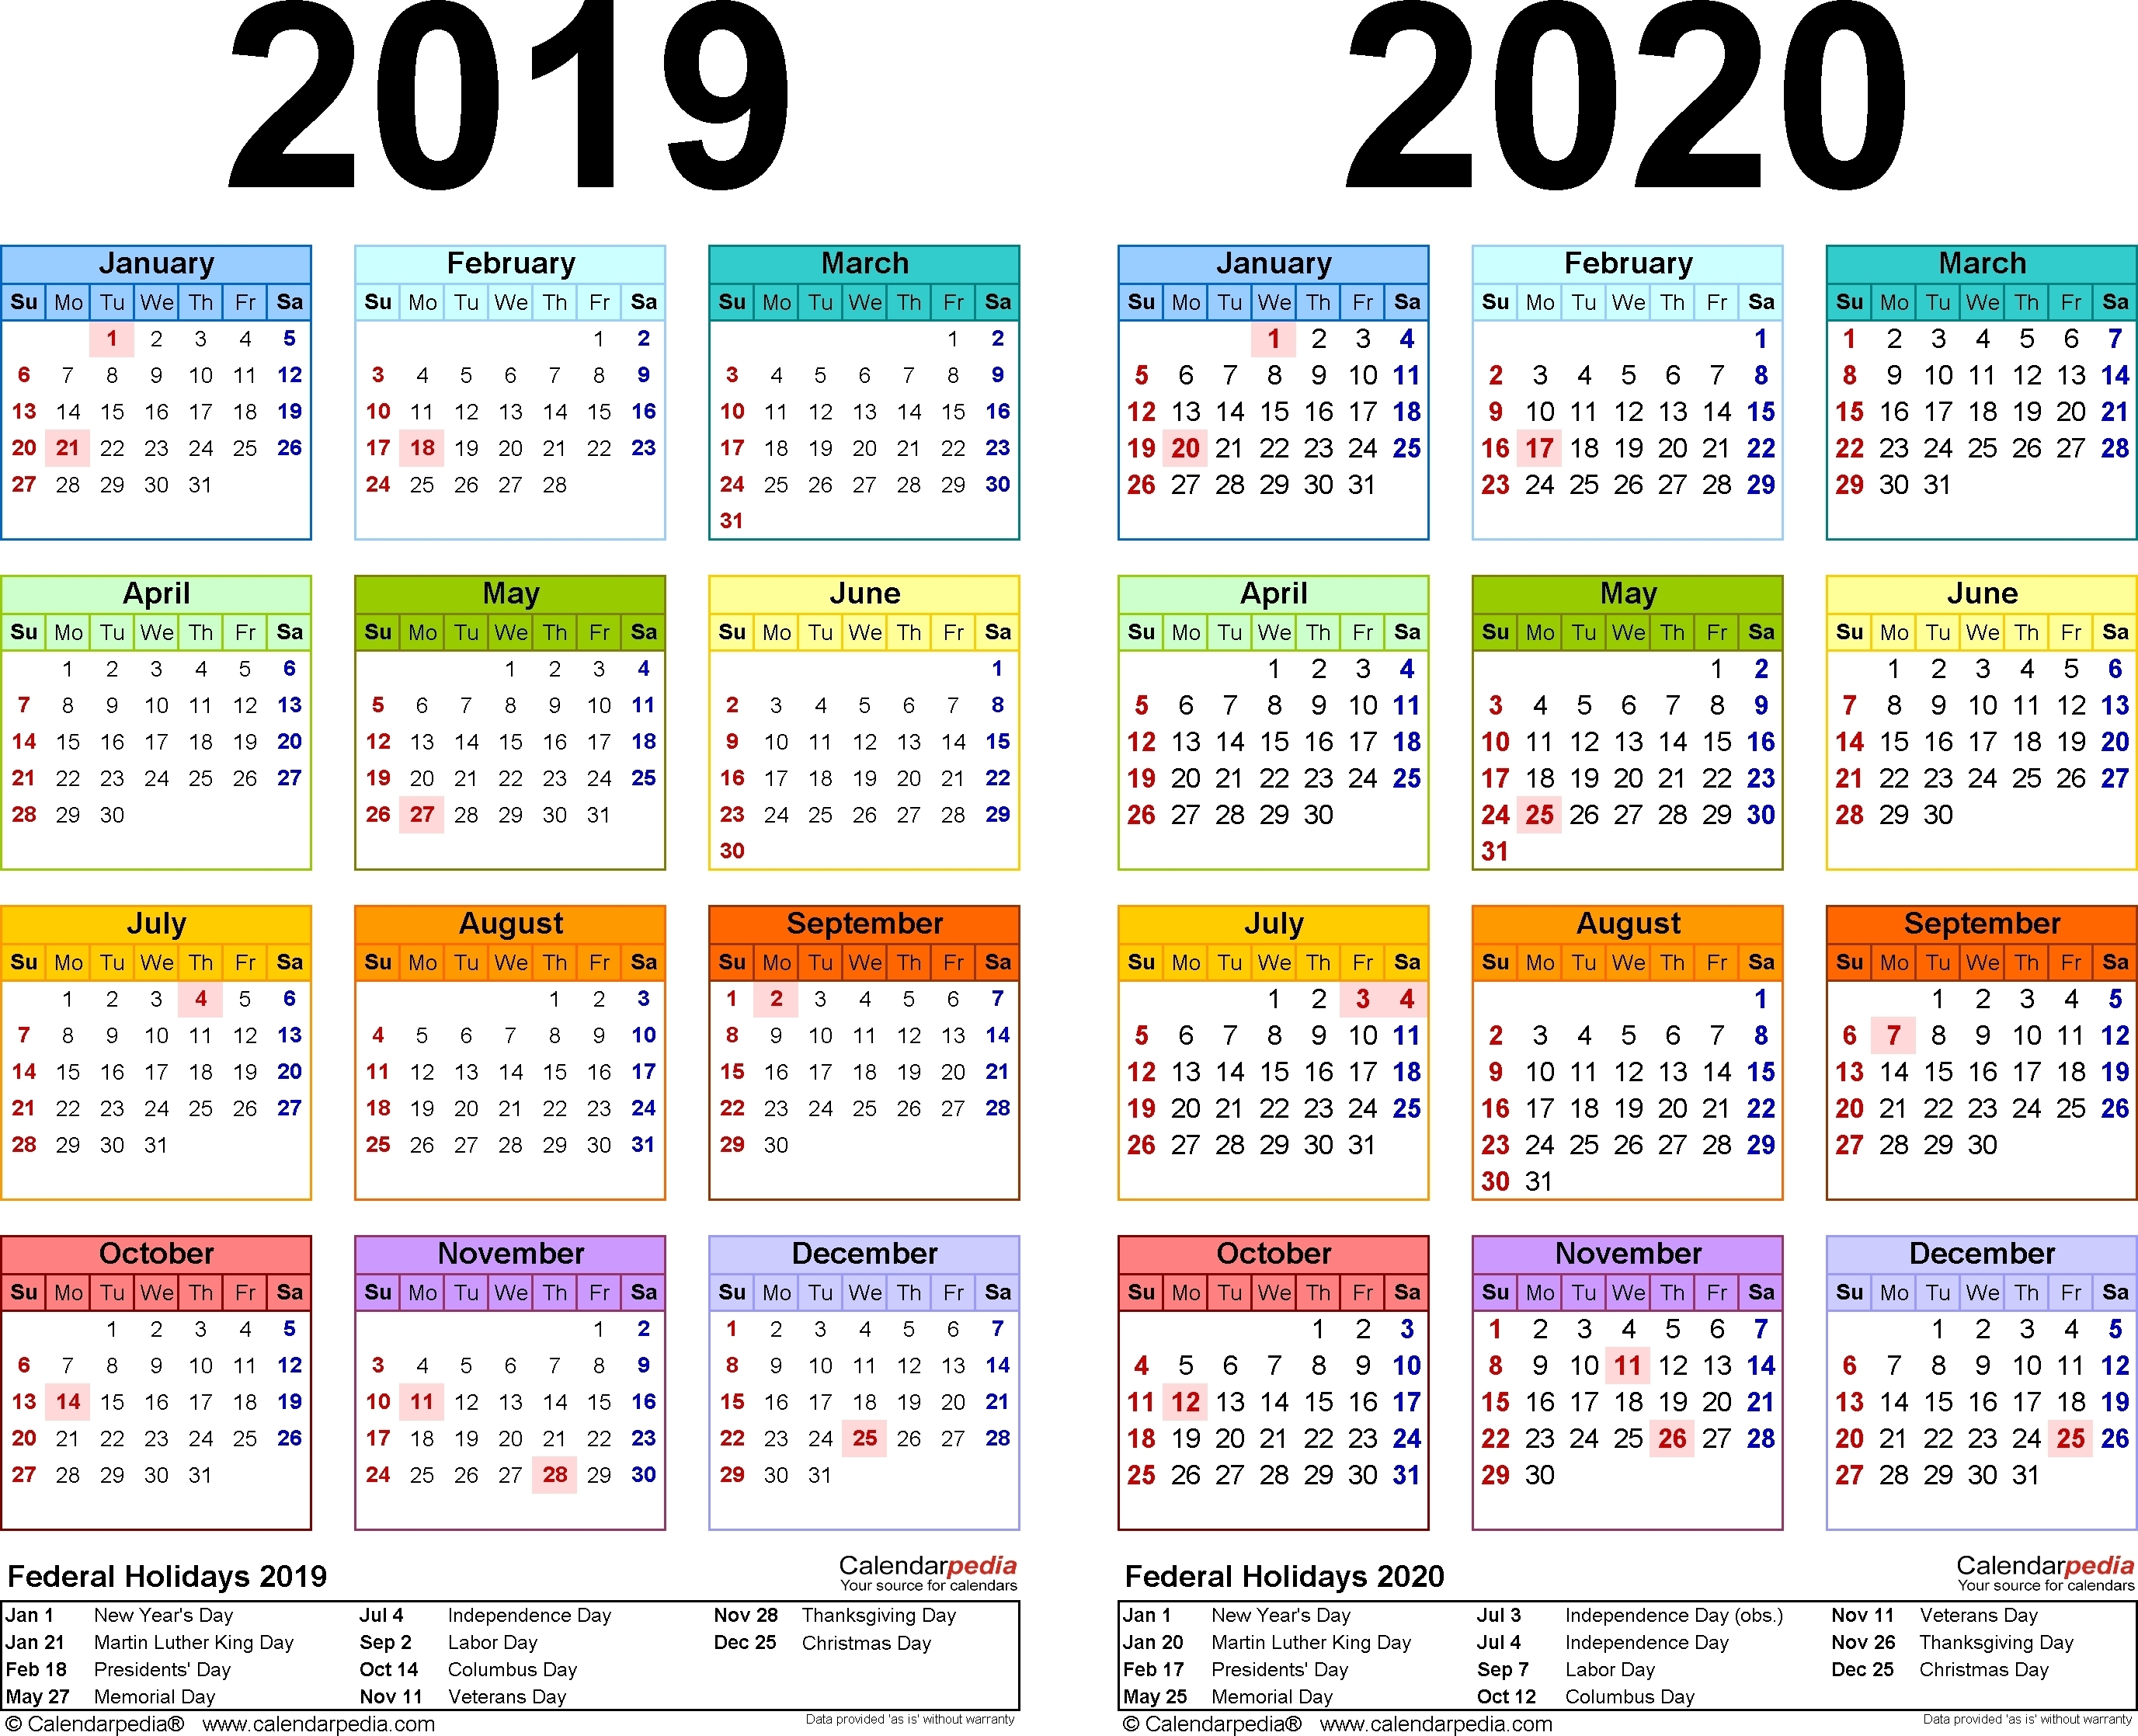 Https://idlewildfurnishing/2020-Blank-Hk-Calender/ 2019-January 2020 Calendar Hong Kong